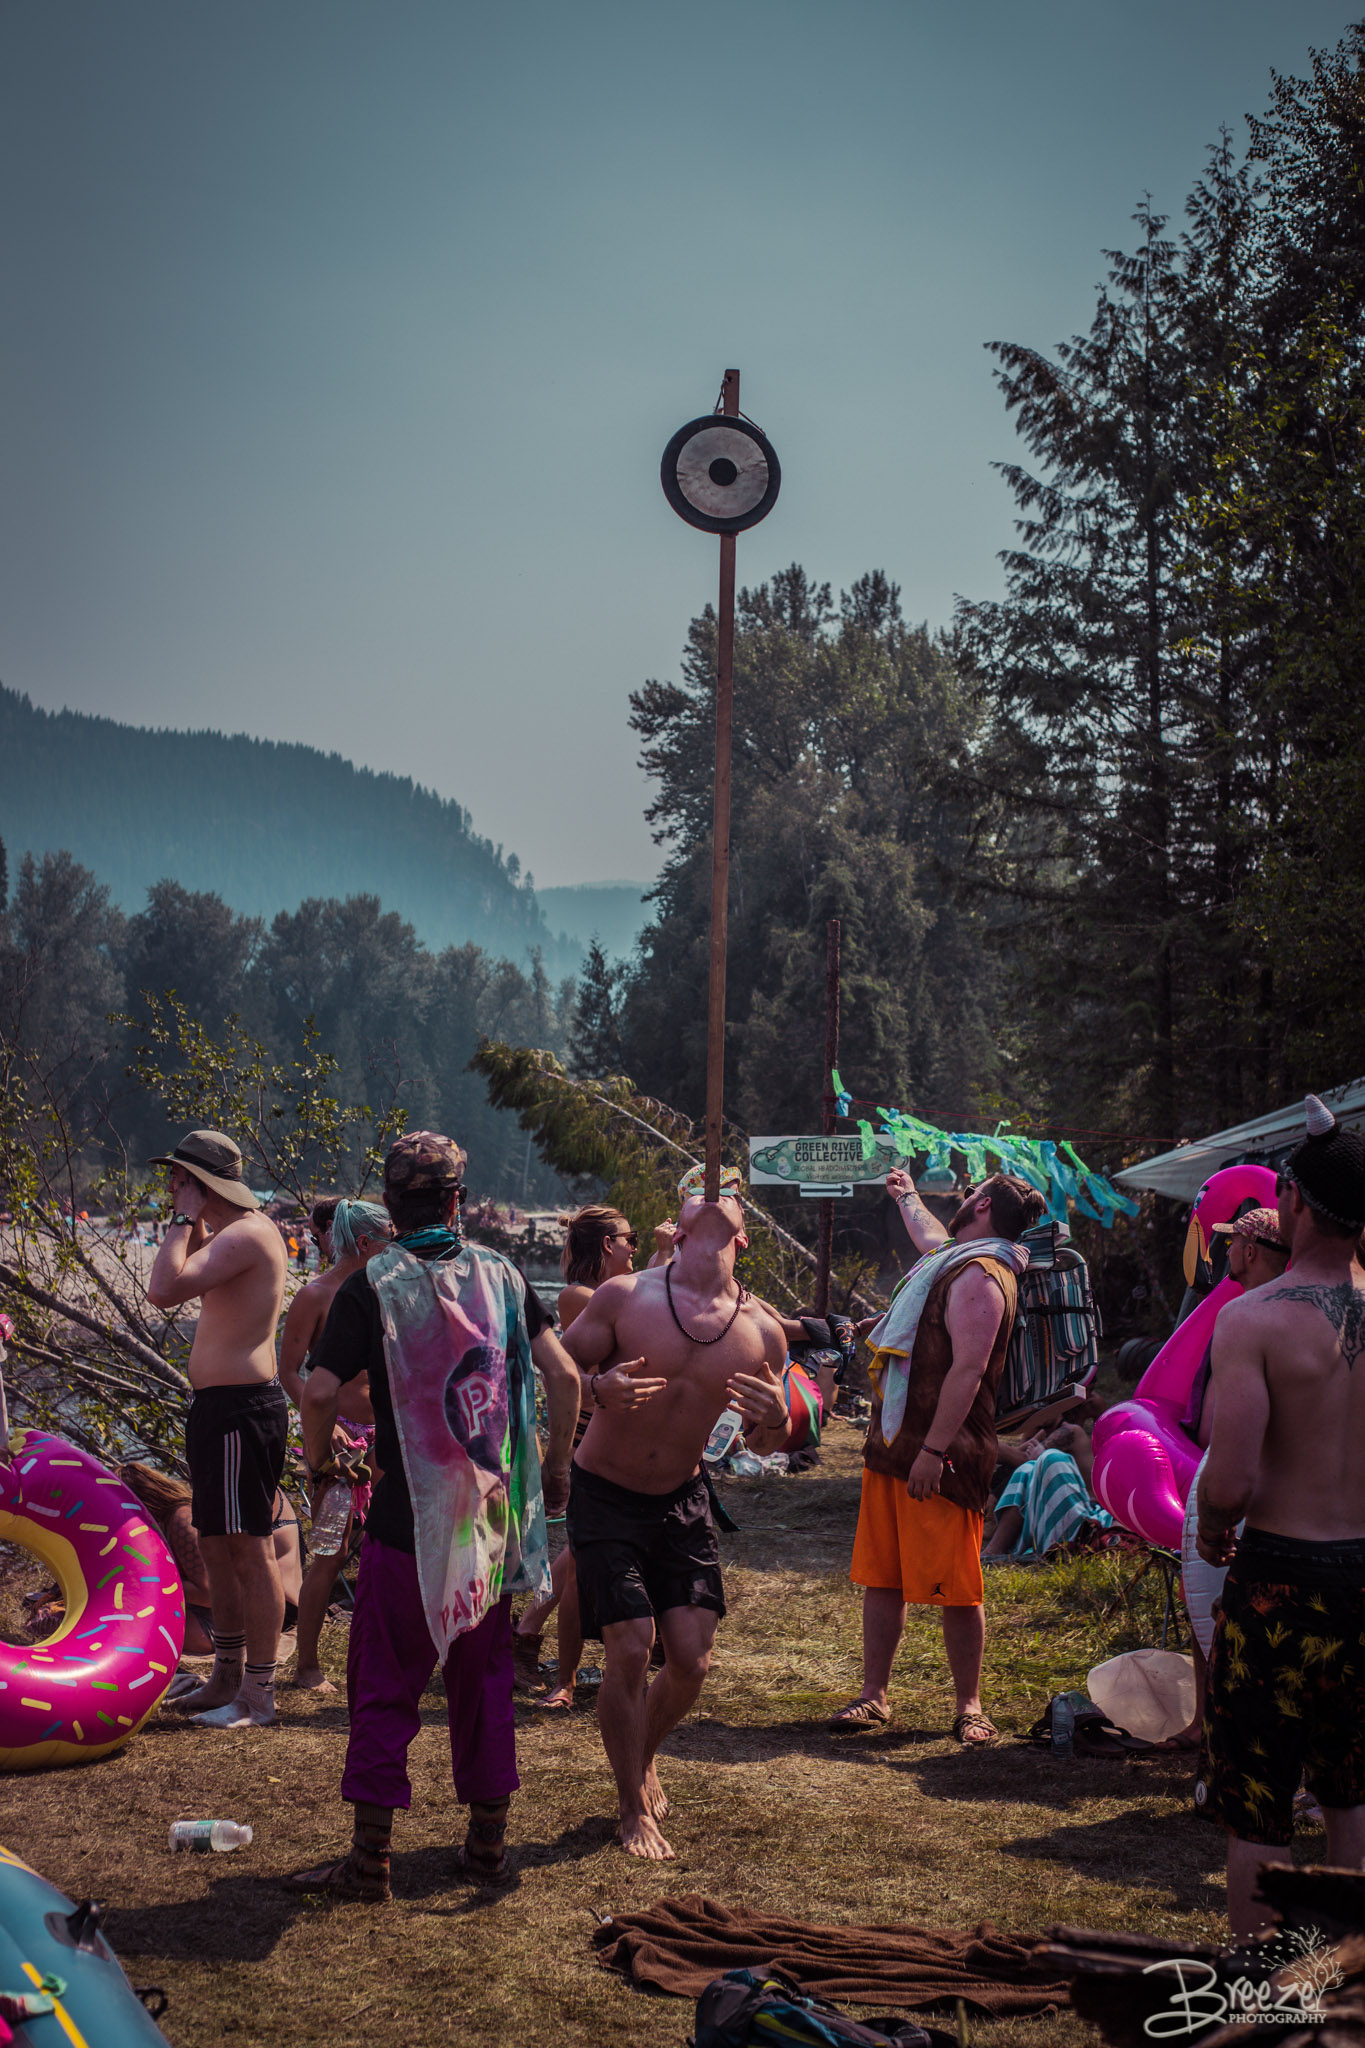 Brie'Ana Breeze Photography & Media - Shambhala 2018-9482.jpg